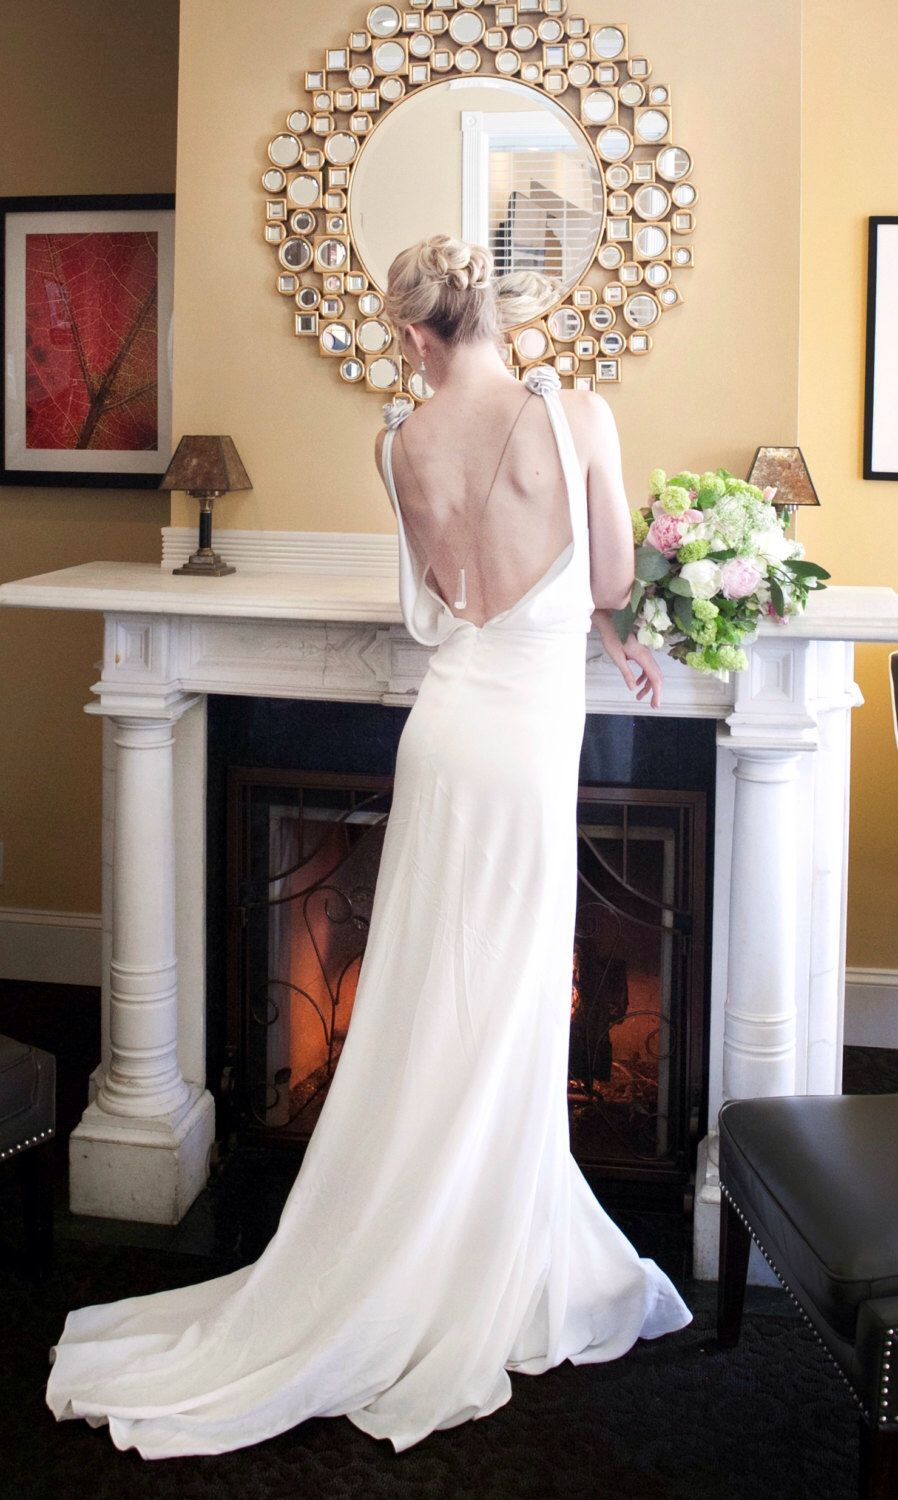 Backless Wedding Dress, 1930, 1920, Art Deco, Vintage Inspired, CHANDELIER, Long Ivory Bias Crepe by FrenchKnotCouture on Etsy https://www.etsy.com/listing/234128581/backless-wedding-dress-1930-1920-art